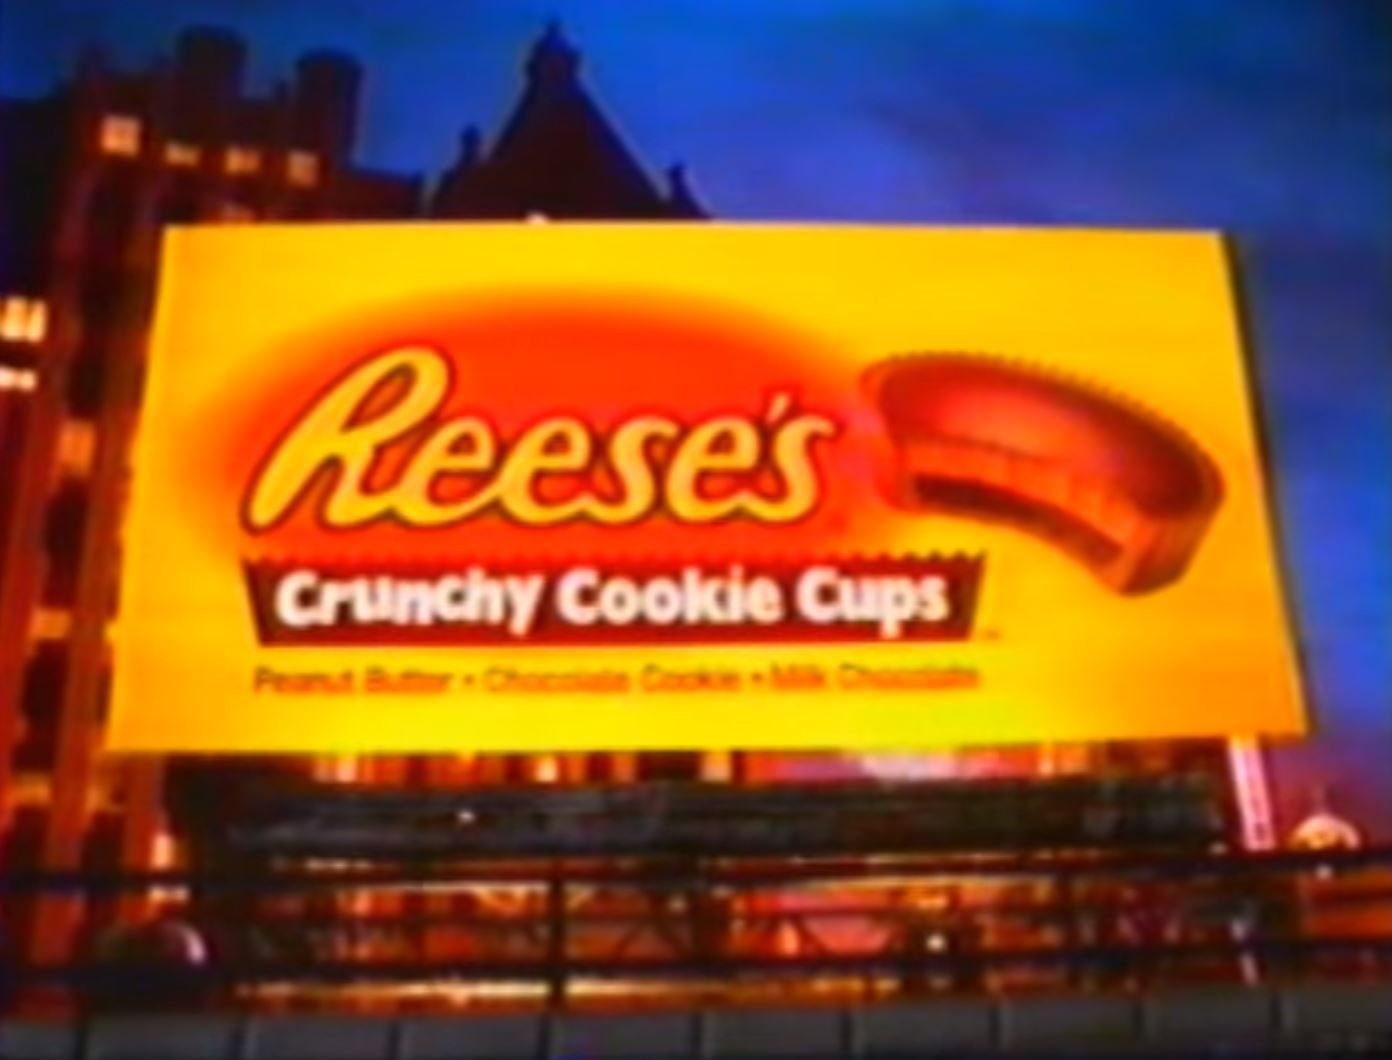 Resse's Crunchy cookie cups commercial